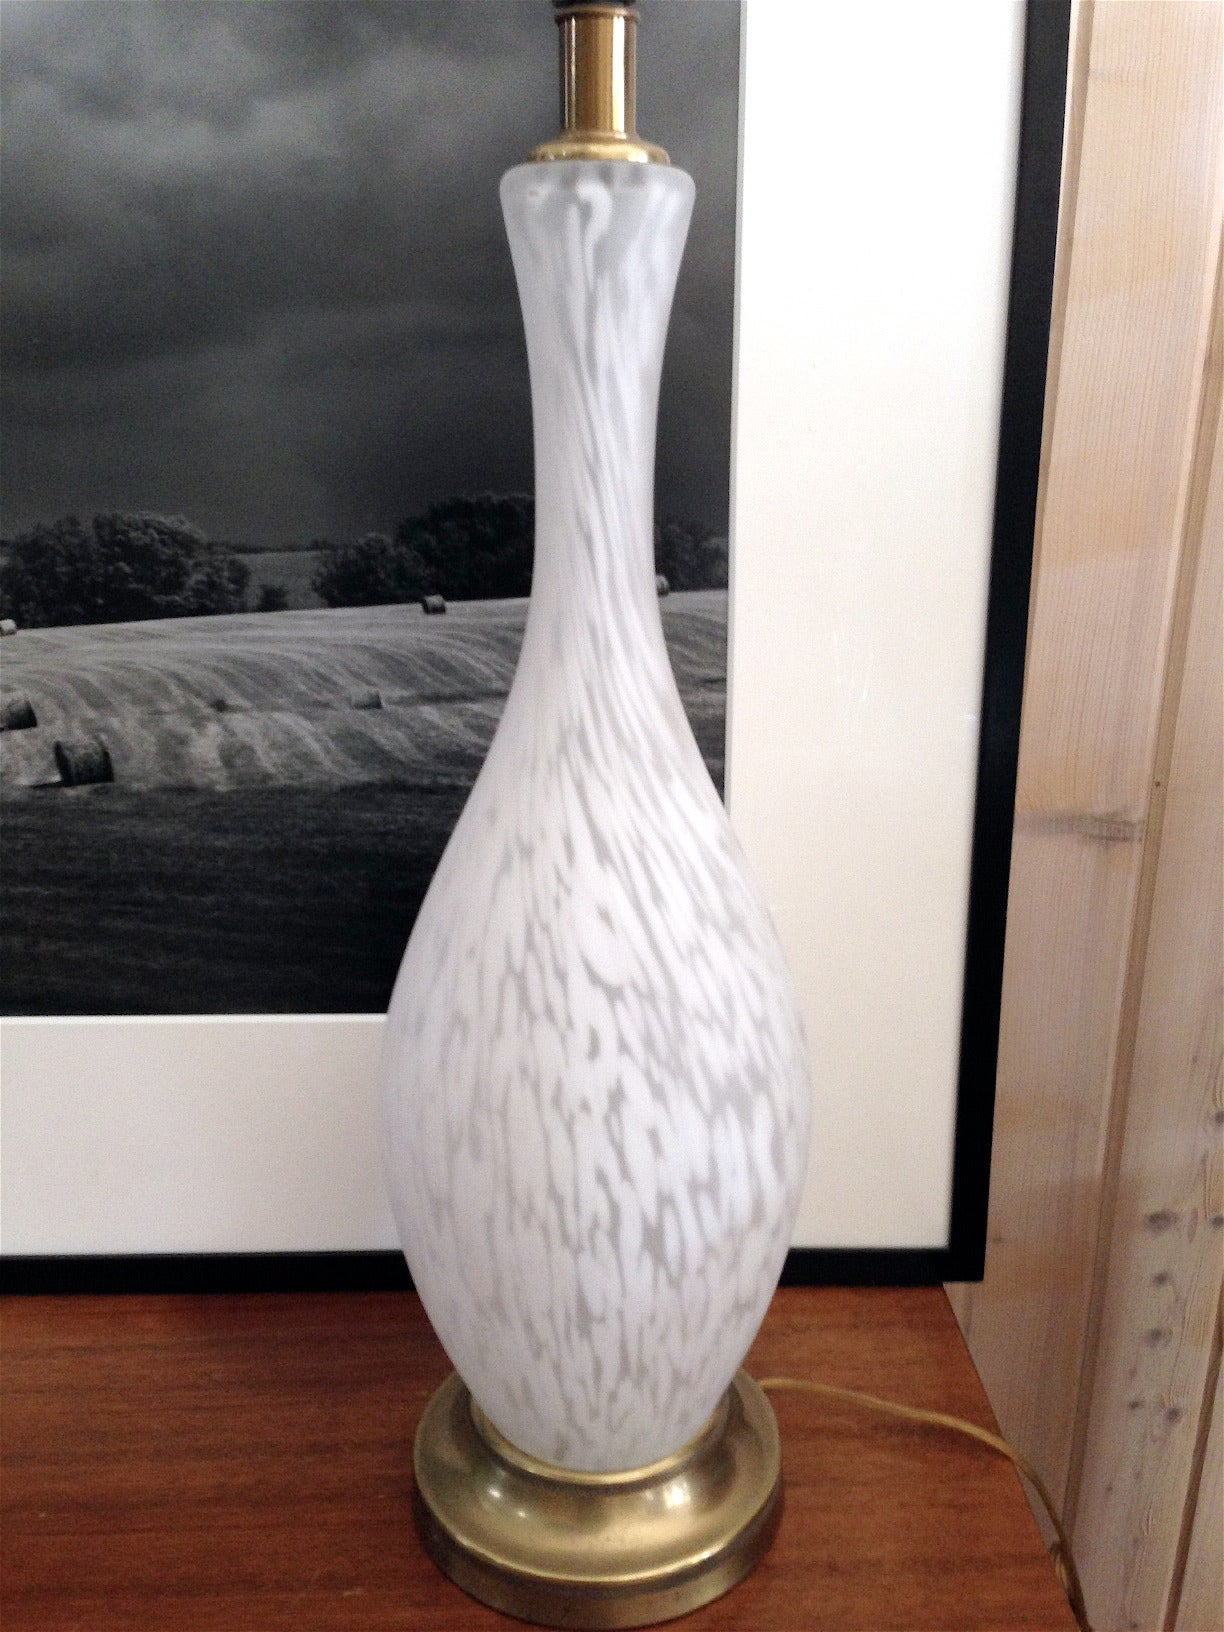 Single Midcentury White Murano Glass Lamp In Excellent Condition For Sale In Buchanan, MI